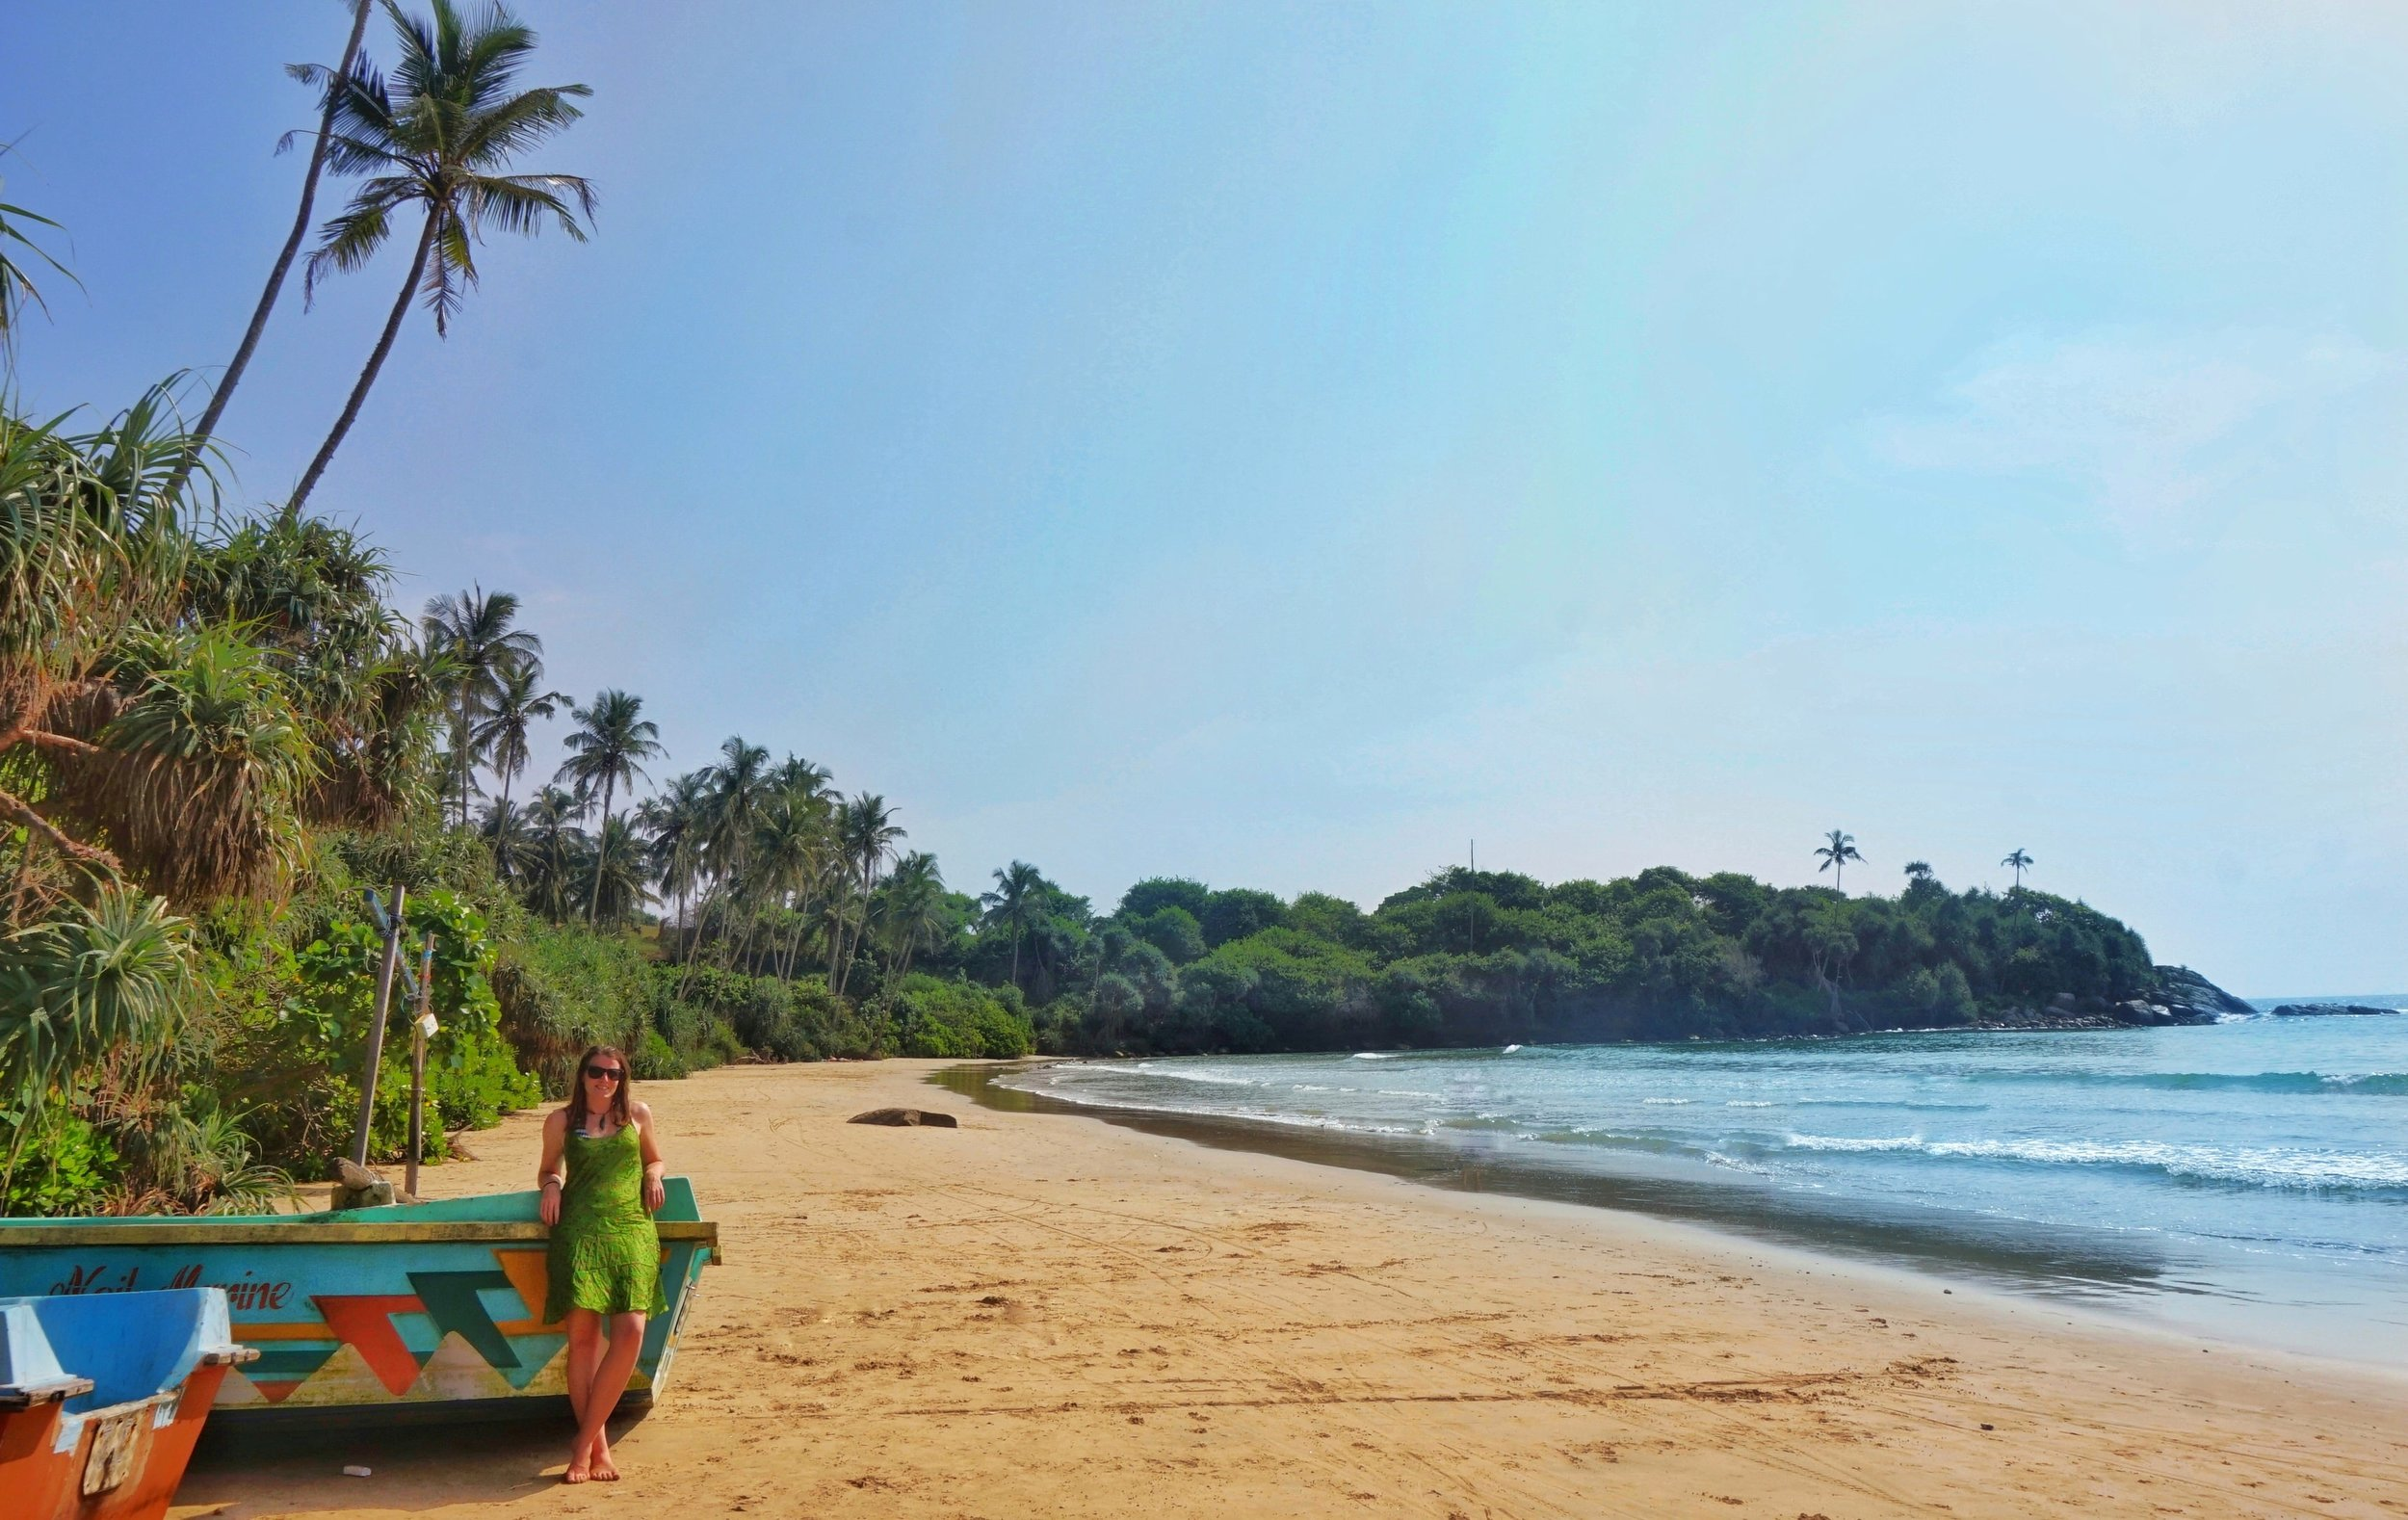 We were very happy with our Sri Lankan beach choice!